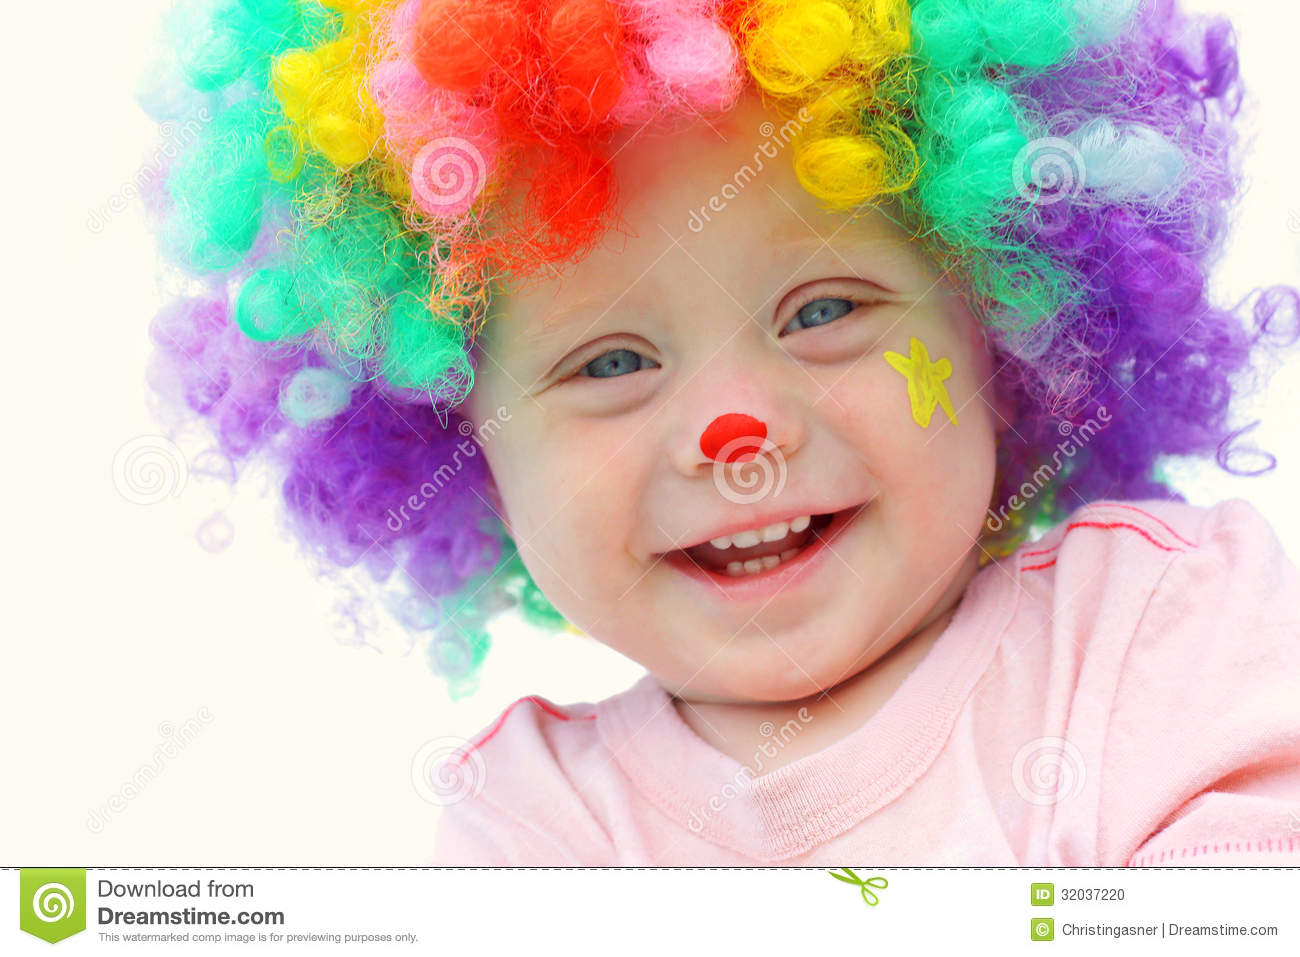 Baby In Clown Costume Stock Photo. Image Of Face Make - 32037220